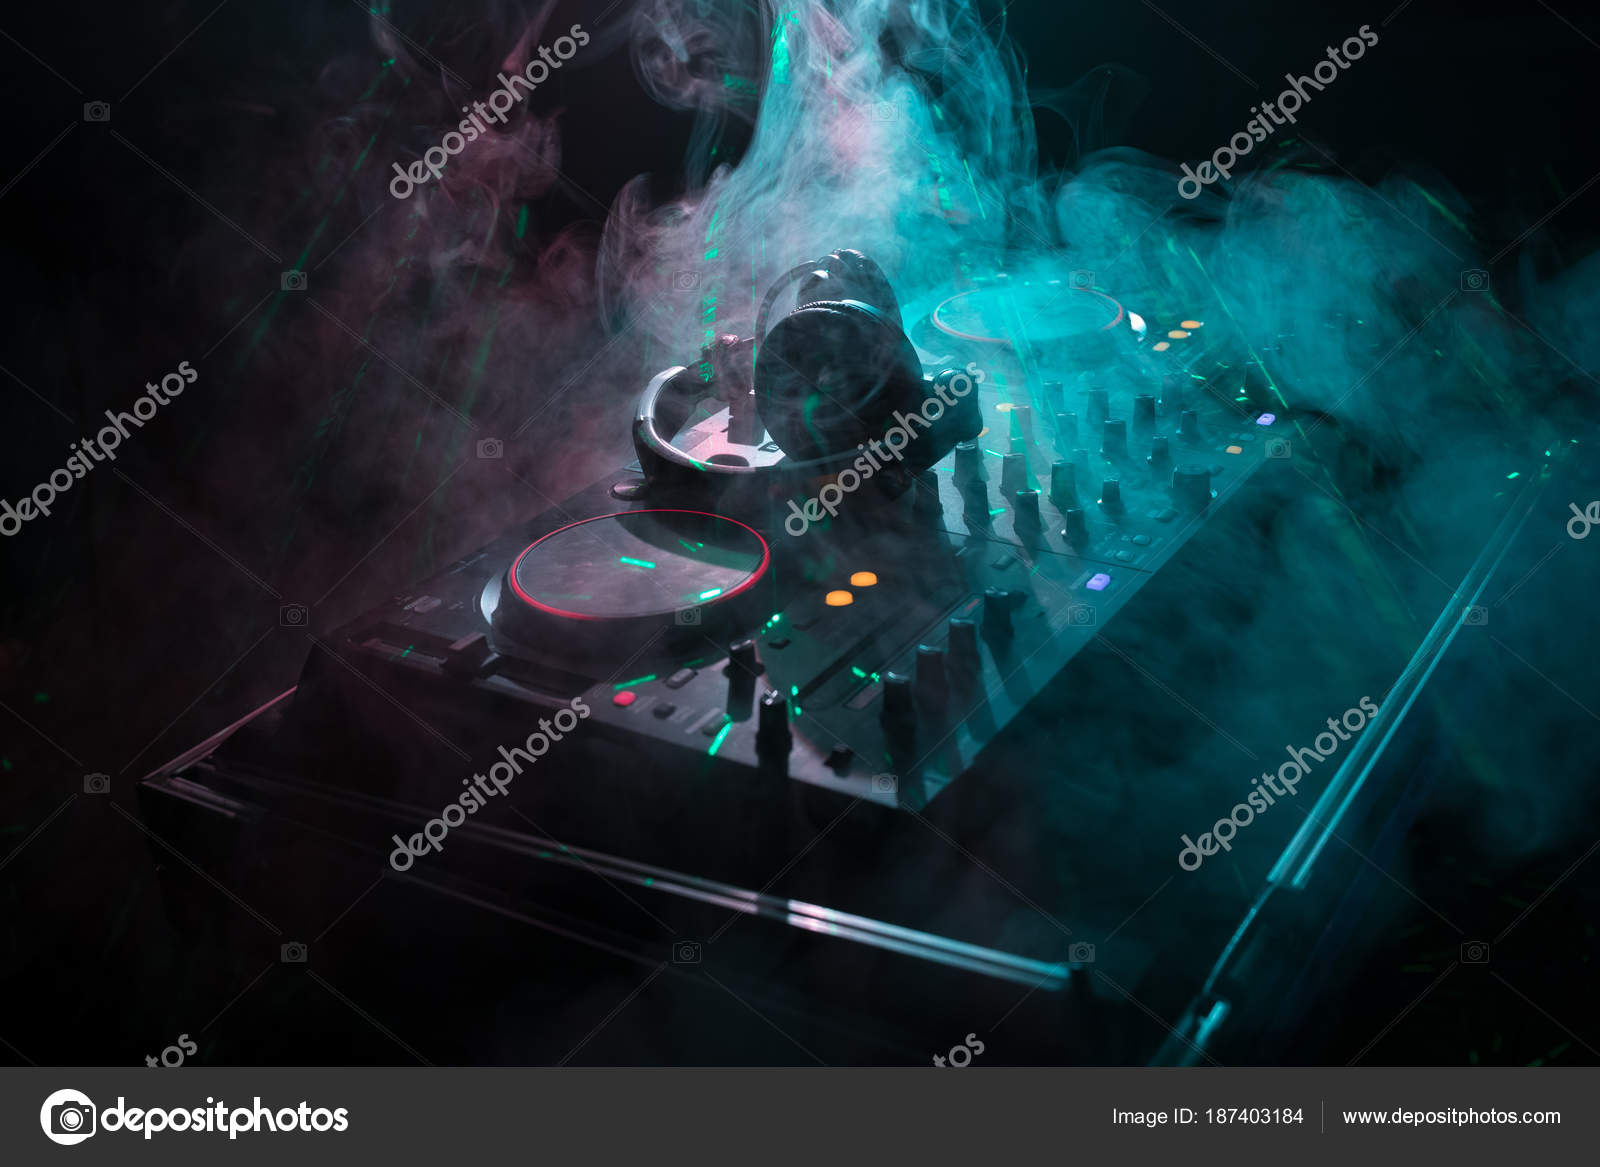 Dj Spinning Mixing And Scratching In A Night Club Hands Of Strobe Light Circuit Related Keywords Suggestions Tweak Various Track Controls On Djs Deck Lights Fog Or Mixes The